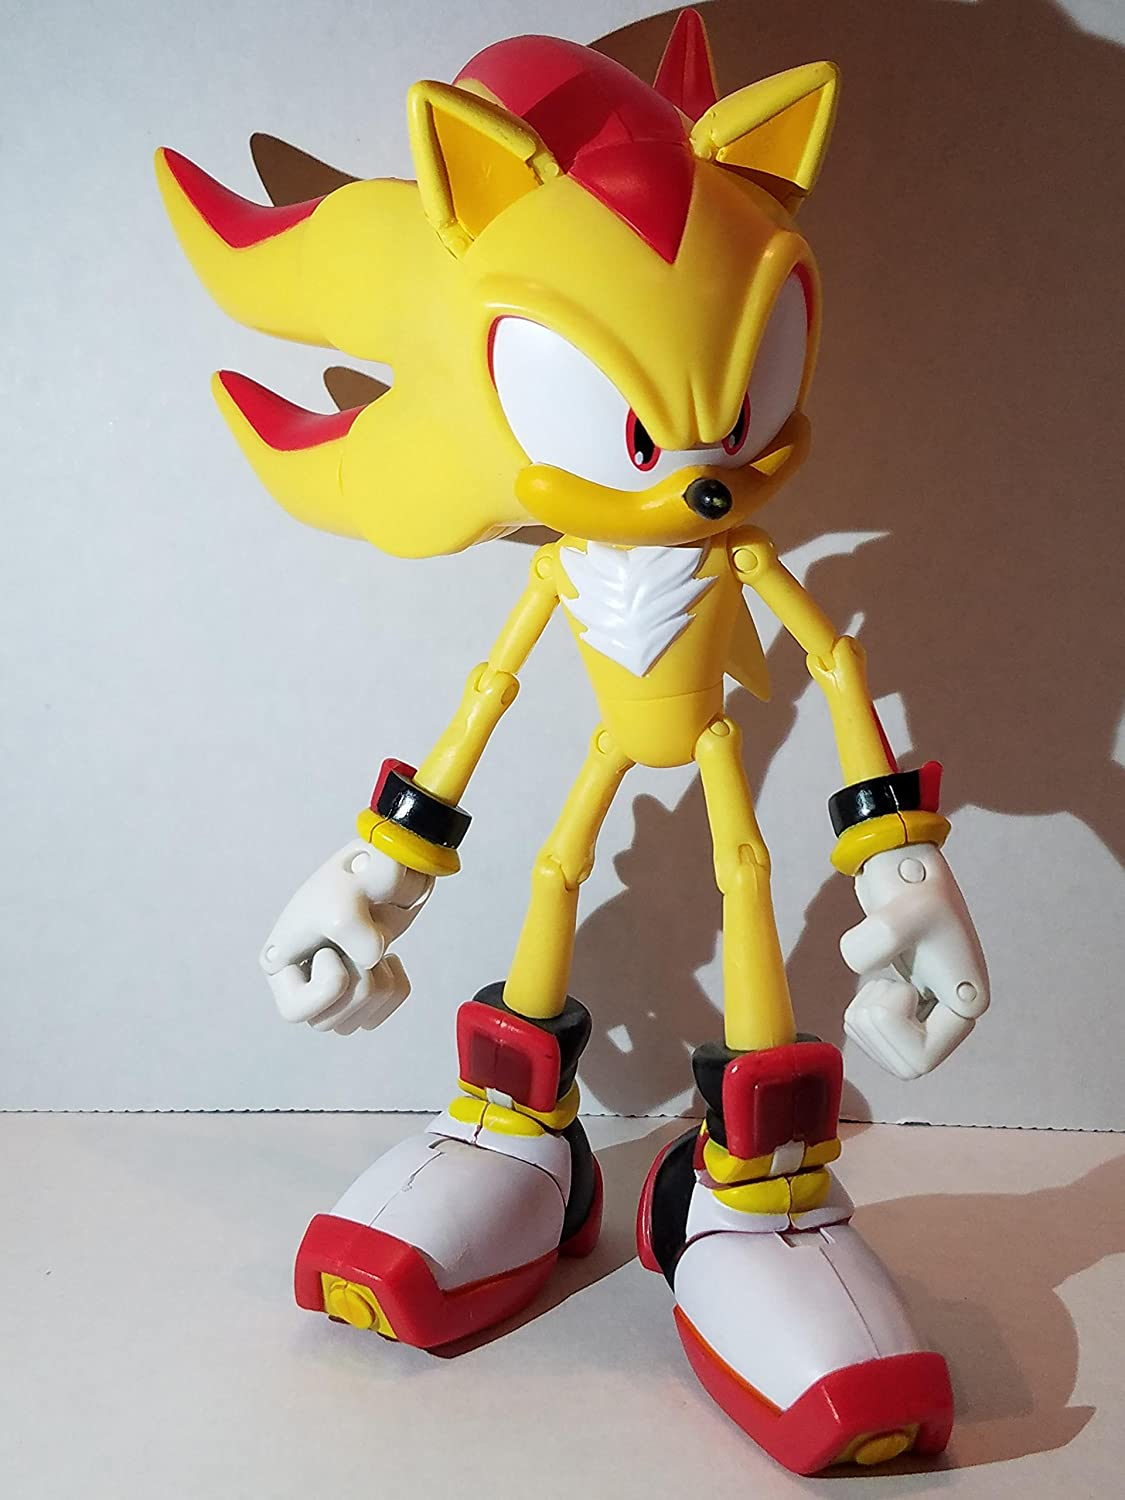 Amazon Com Sonic The Hedgehog Exclusive Action Figure Super Shadow The Hedgehog Over 25 Points Of Articulation Toys Games